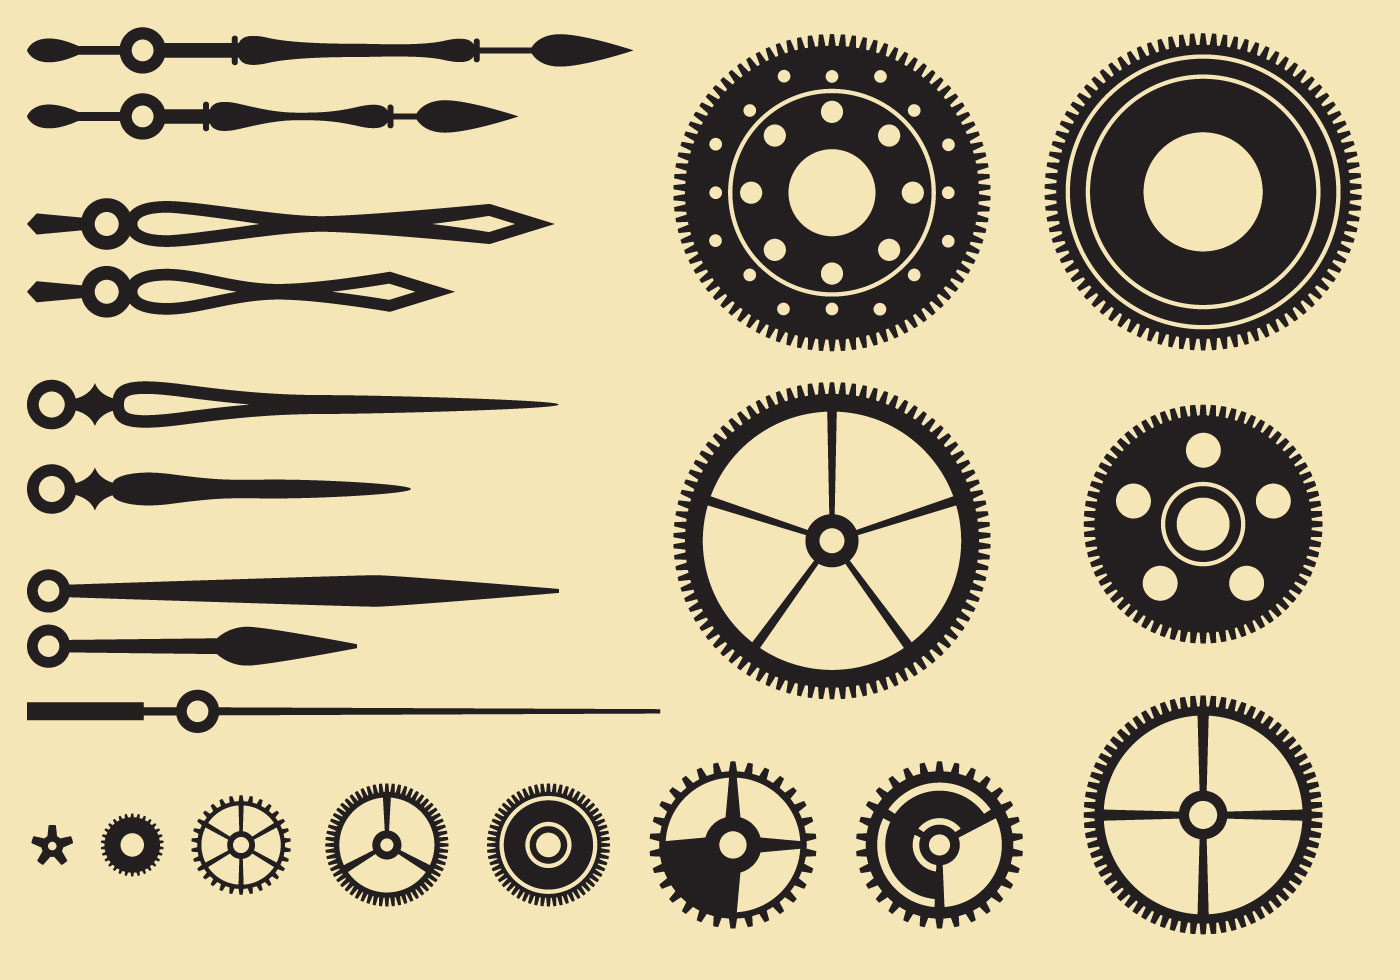 Clock Gears Diagram 17 Best Images About On Pinterest Mechanical Movement Diagrams Bdwf Forum Index Page Download